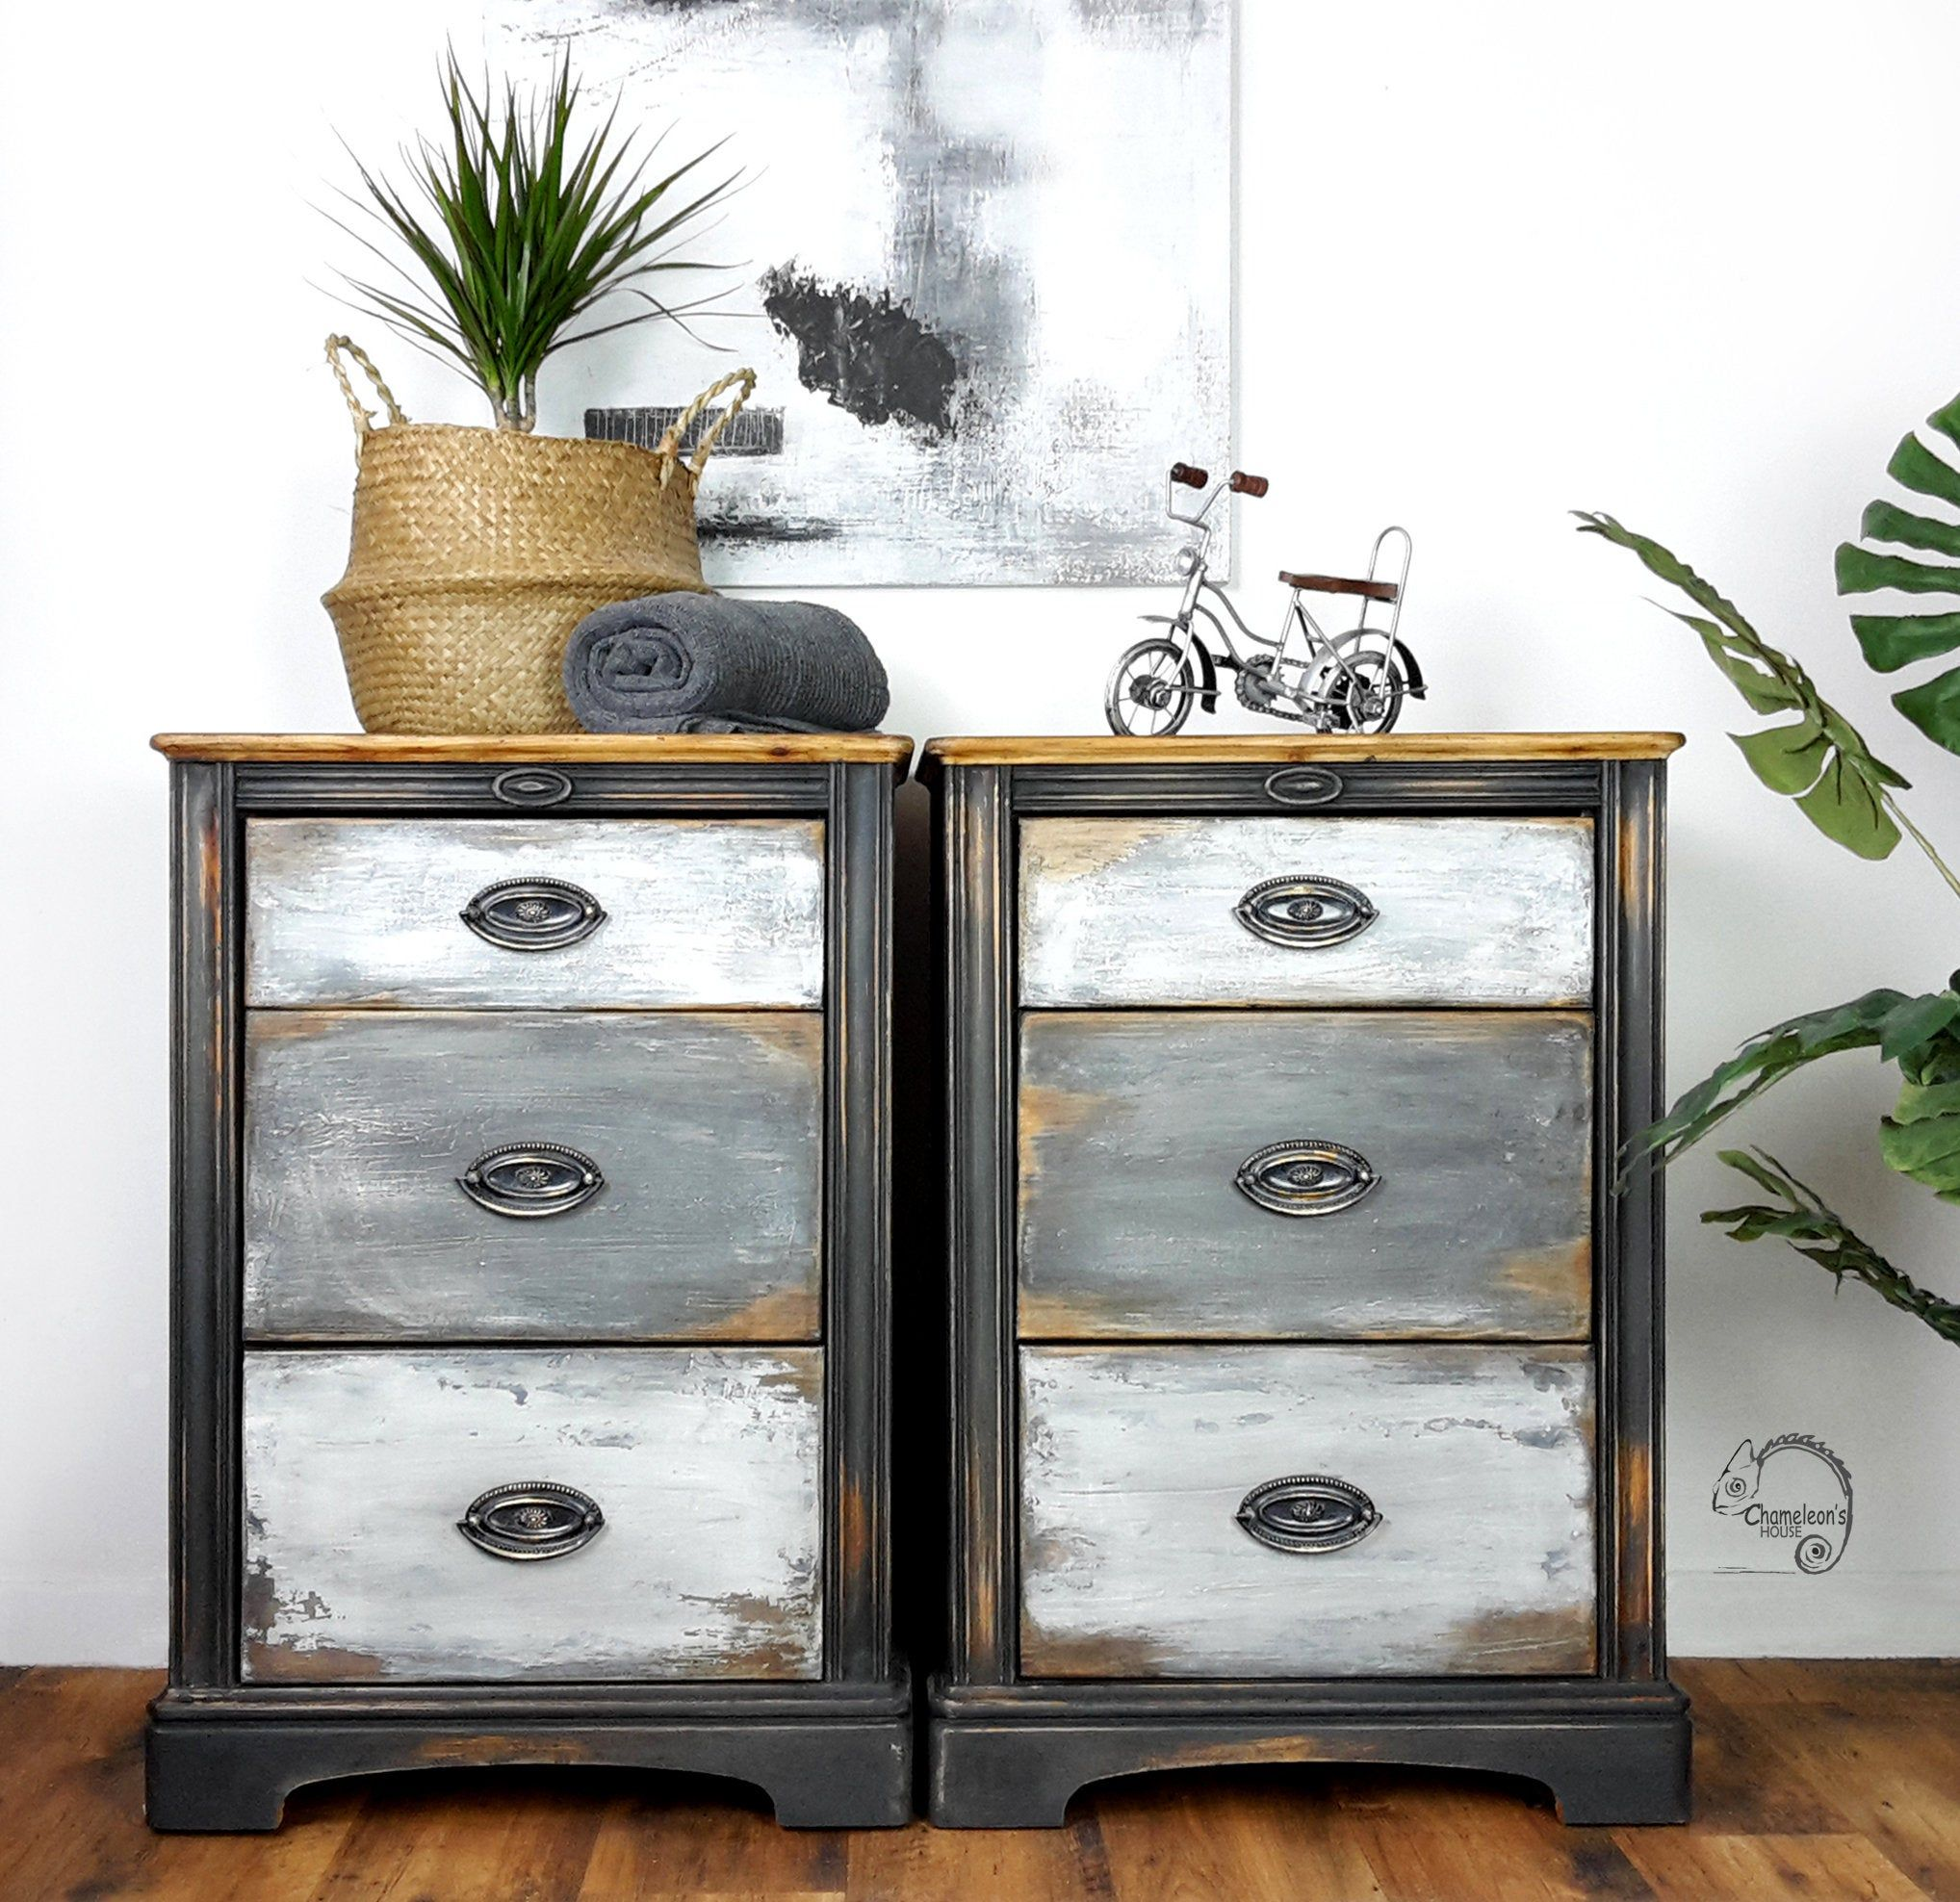 Pair Of Painted Bedside Tables Bedside Cabinets With Drawers Distressed Furniture Painted Drawers Hand Painted Furniture Uk In 2020 Bedside Cabinet Hand Painted Furniture Painted Drawers